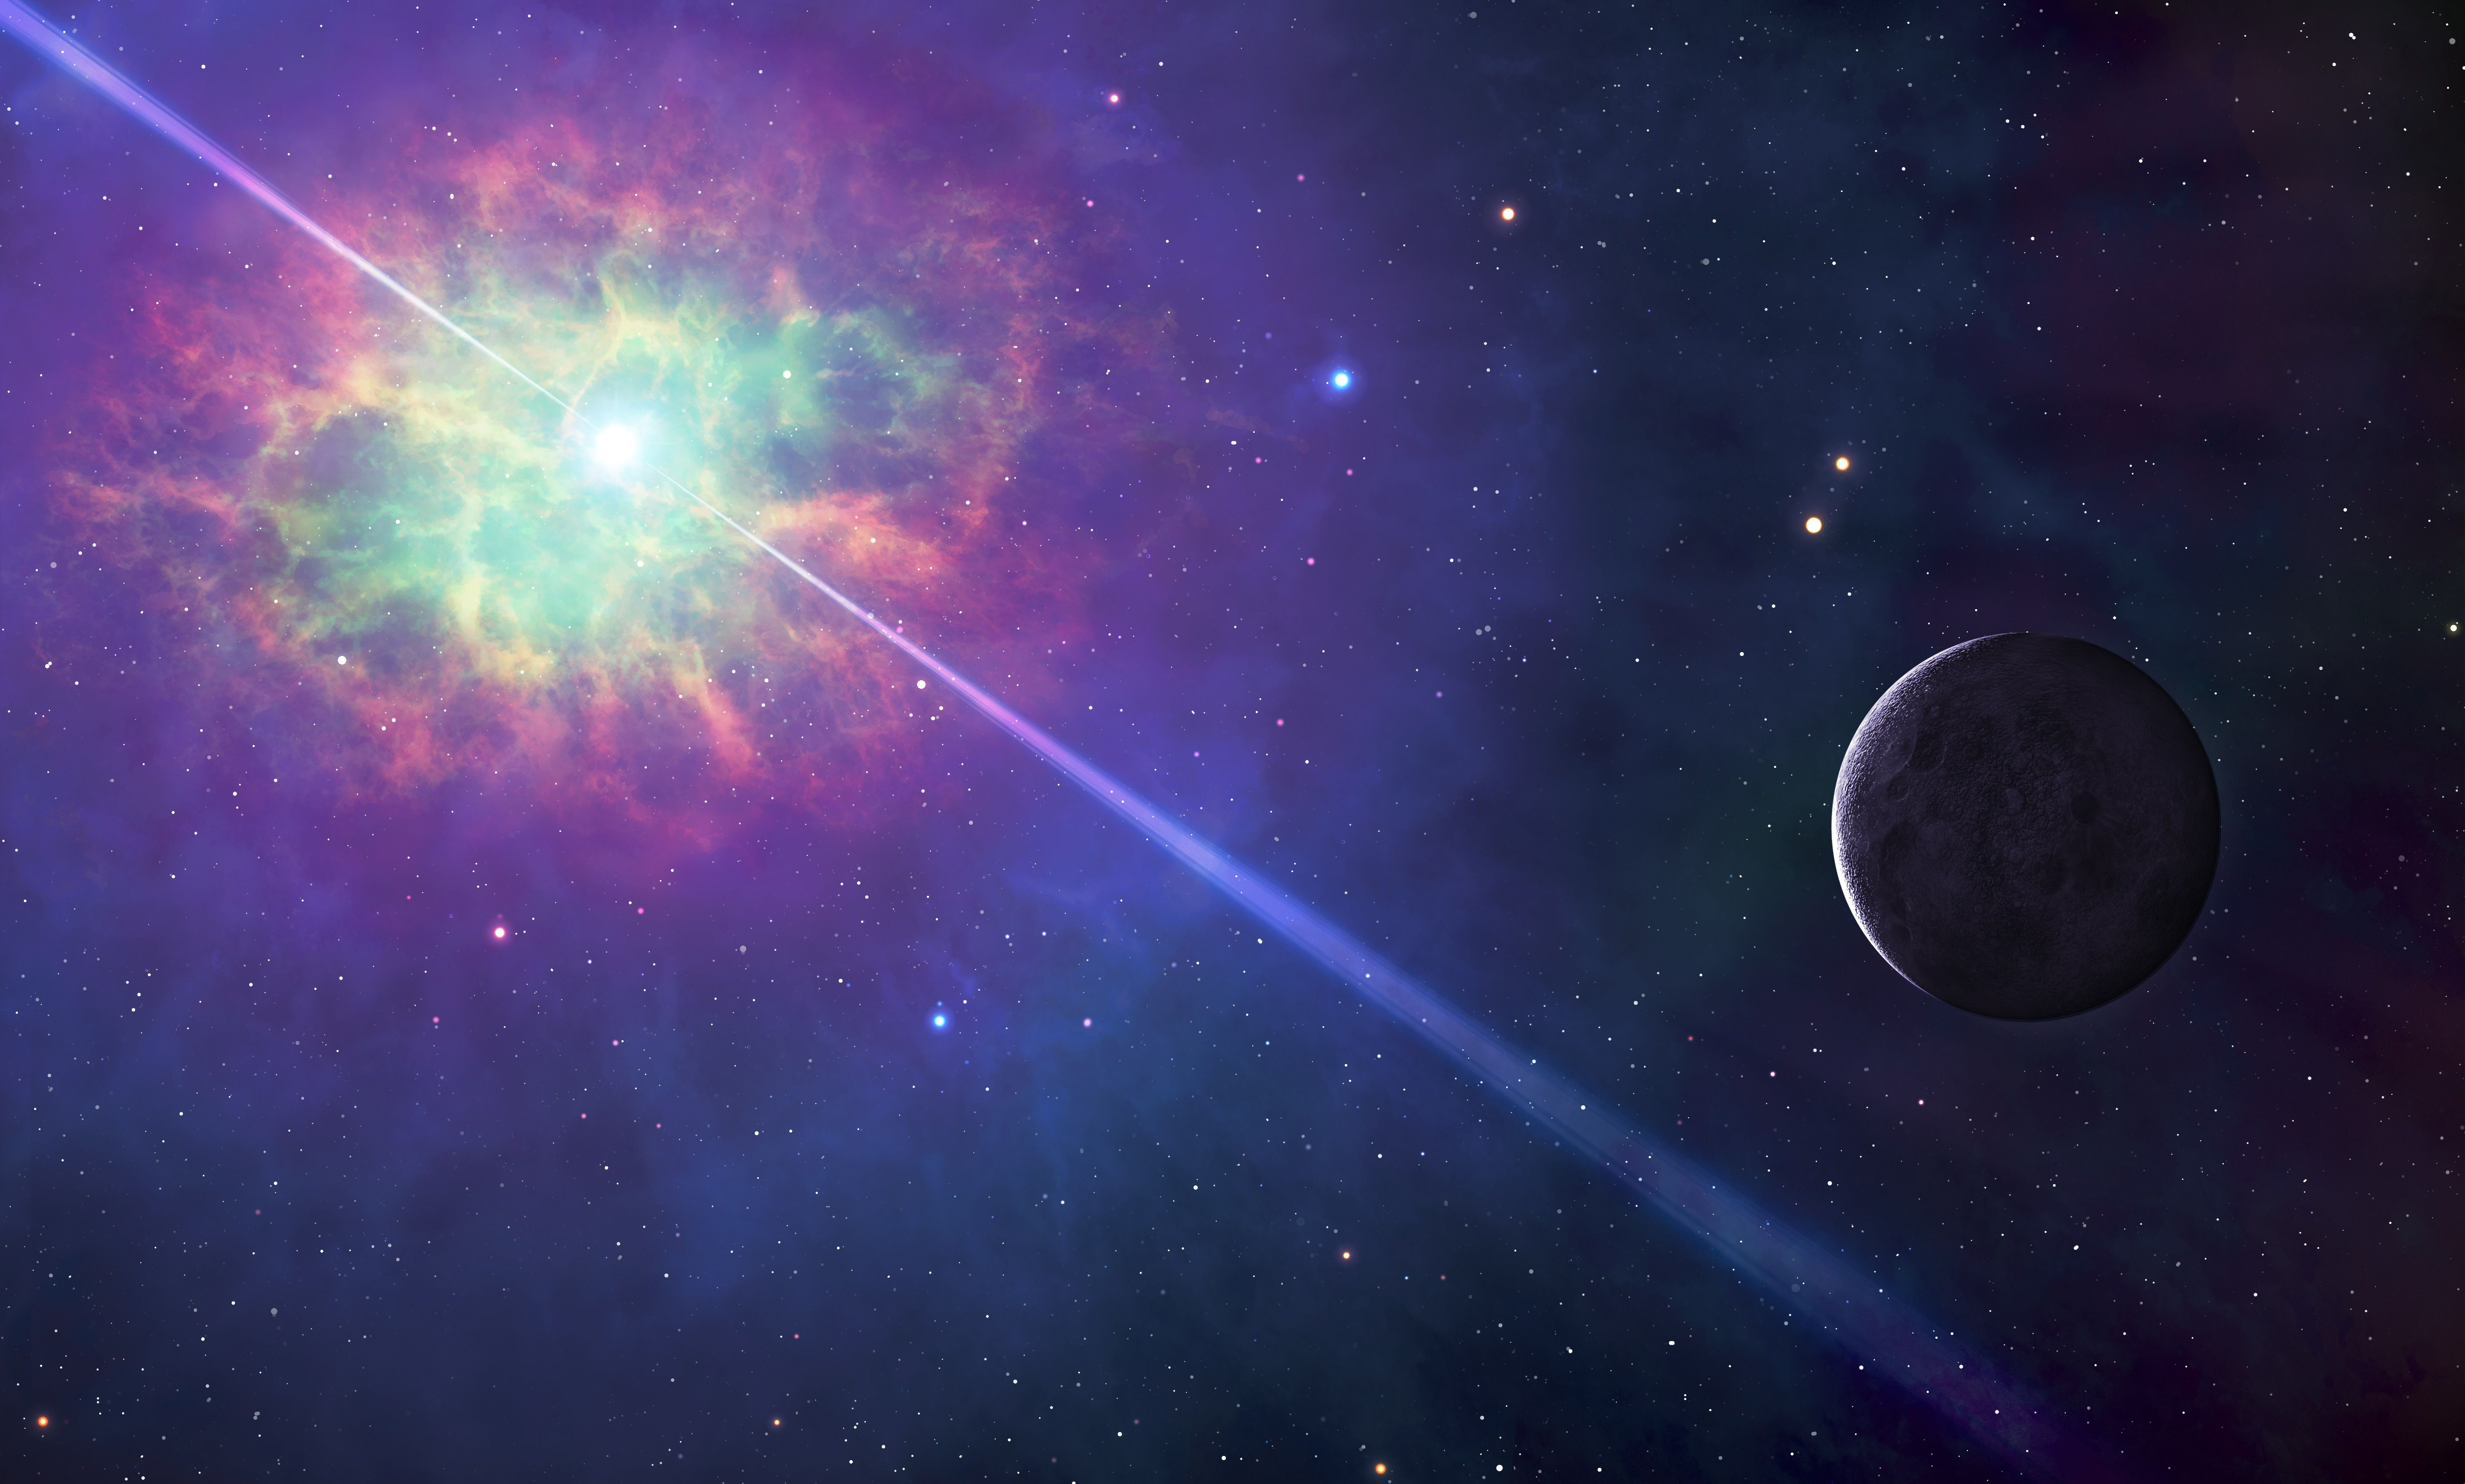 Image of space, with a colorful cloud surrounding a star that projects beams of light in two directions, with a planet illuminated nearby.